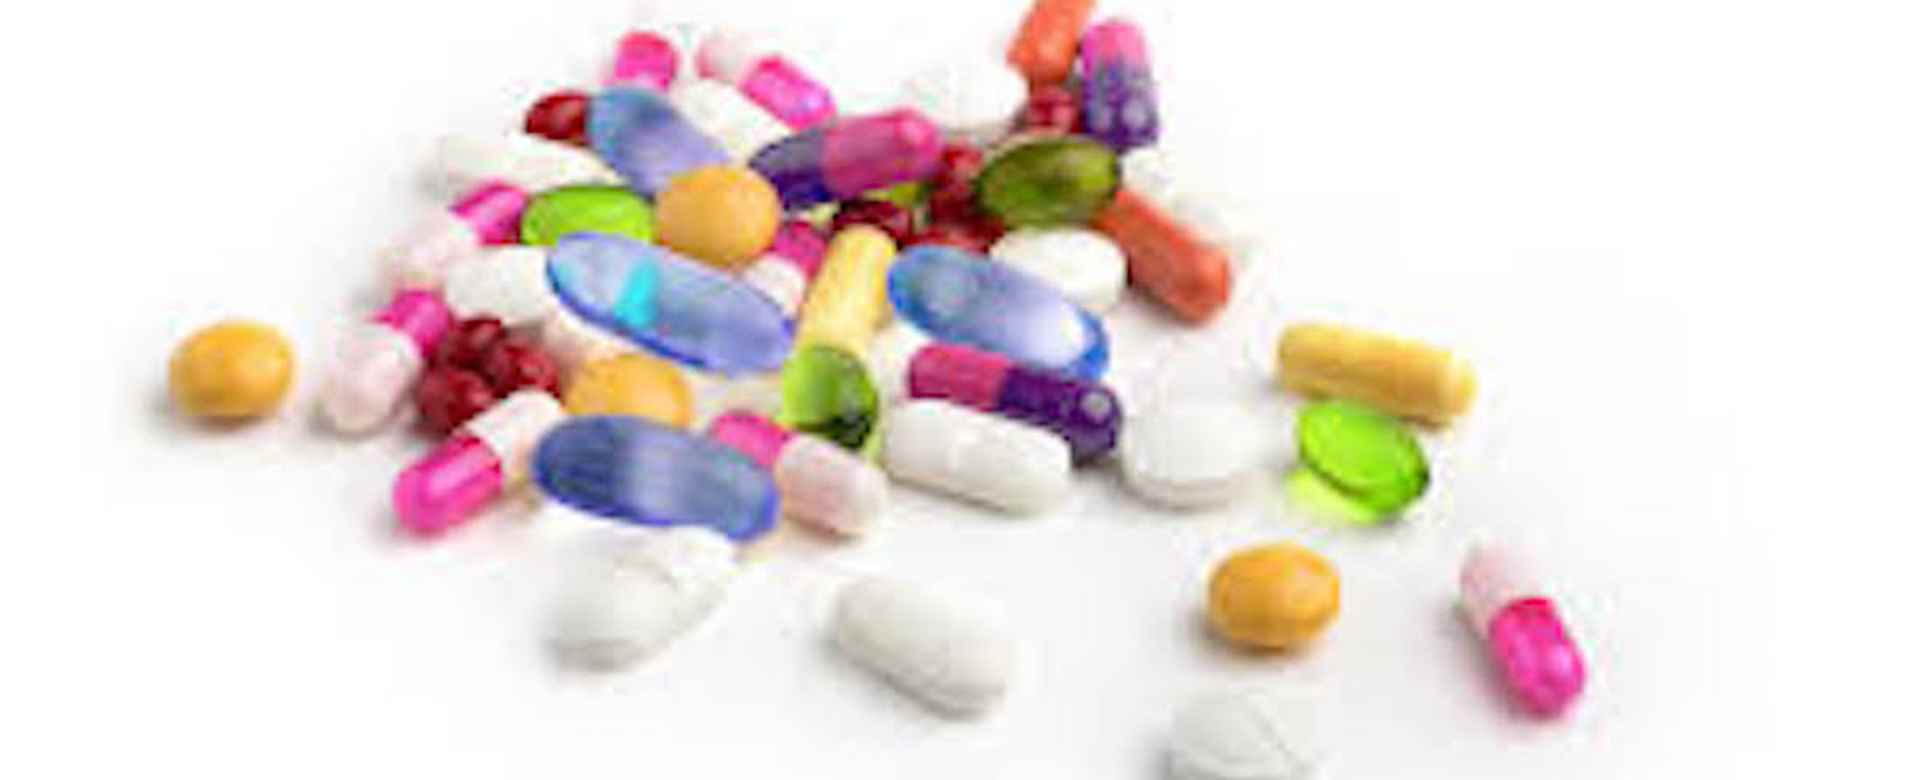 Healthcare Seeking Solutions for Specialty Drugs Costs